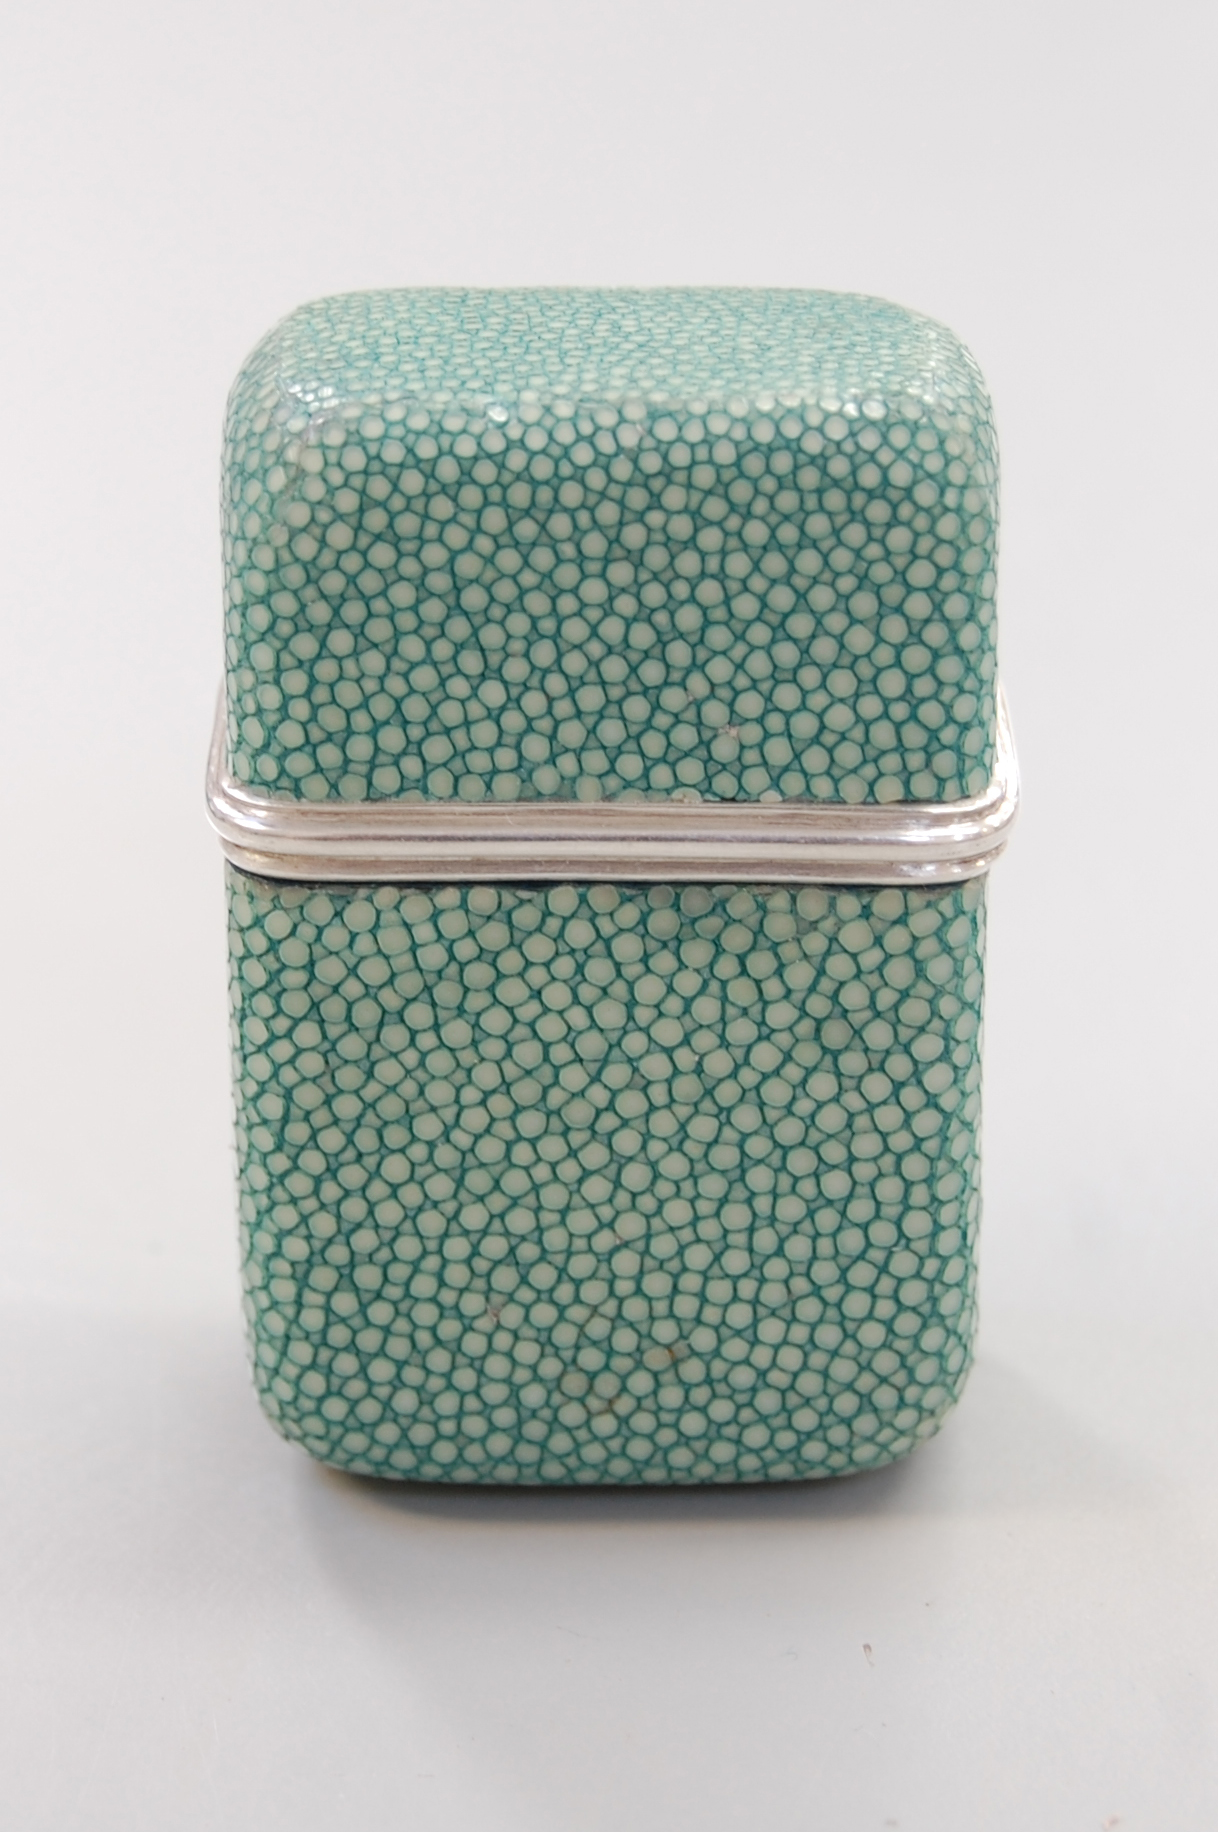 Shagreen box 21.jpg